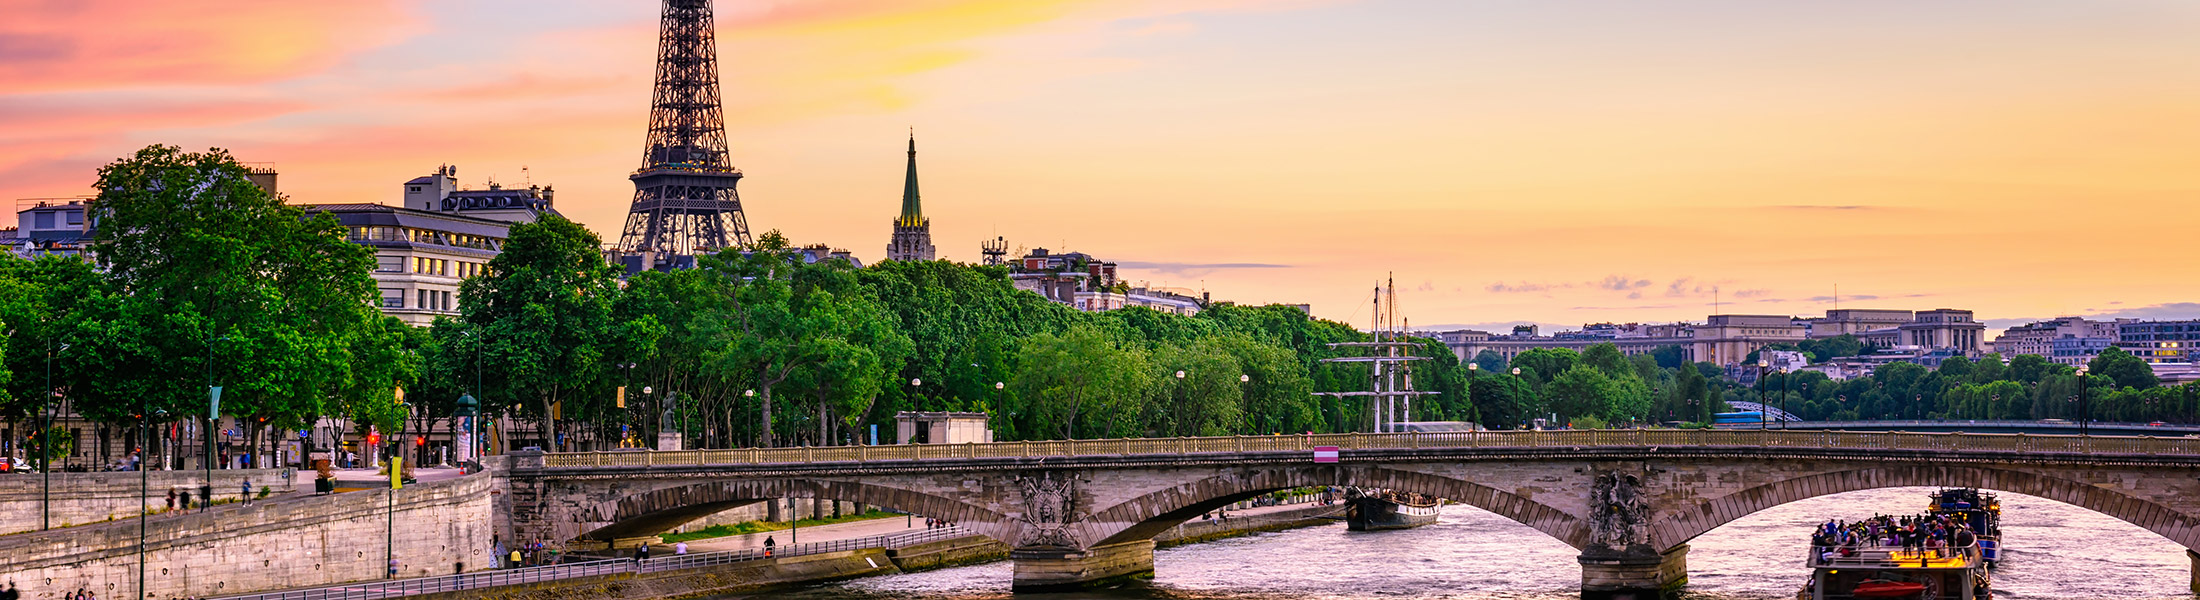 Sunset over the Seine and the Eiffel Tower in Paris France in Europe